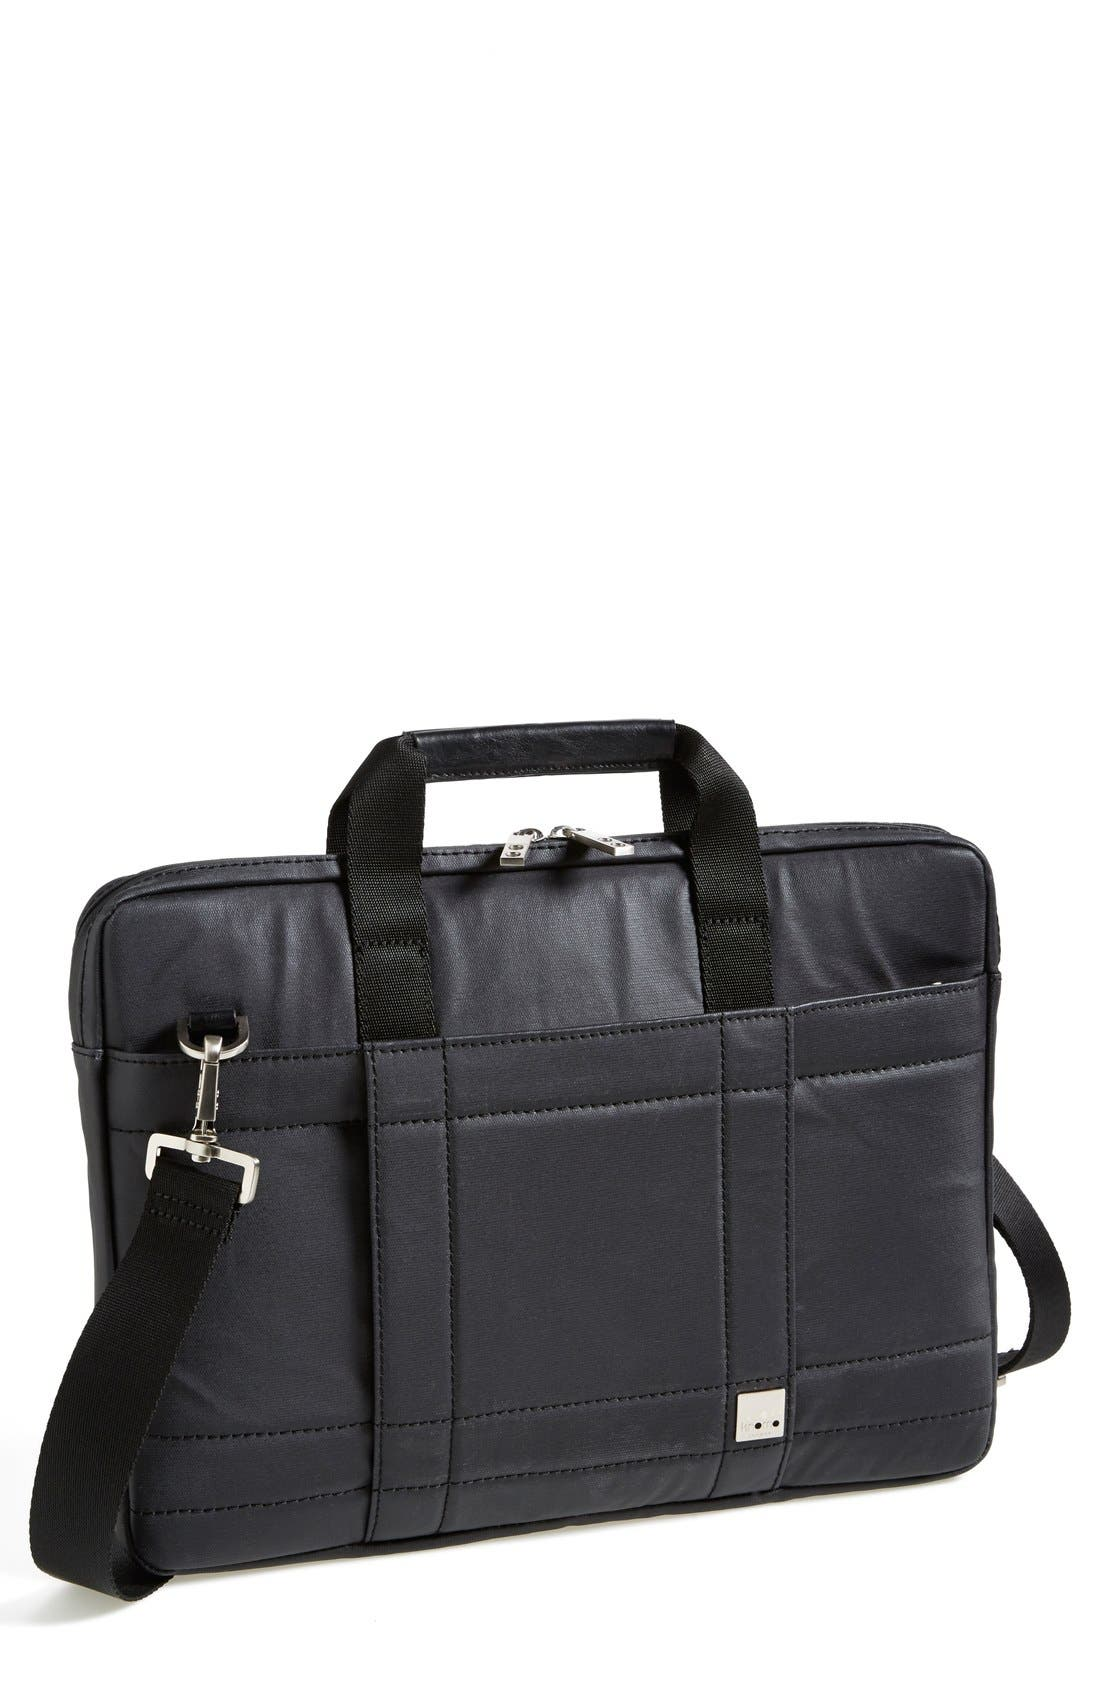 Alternate Image 1 Selected - KNOMO London 'Lincoln' Waterproof Briefcase